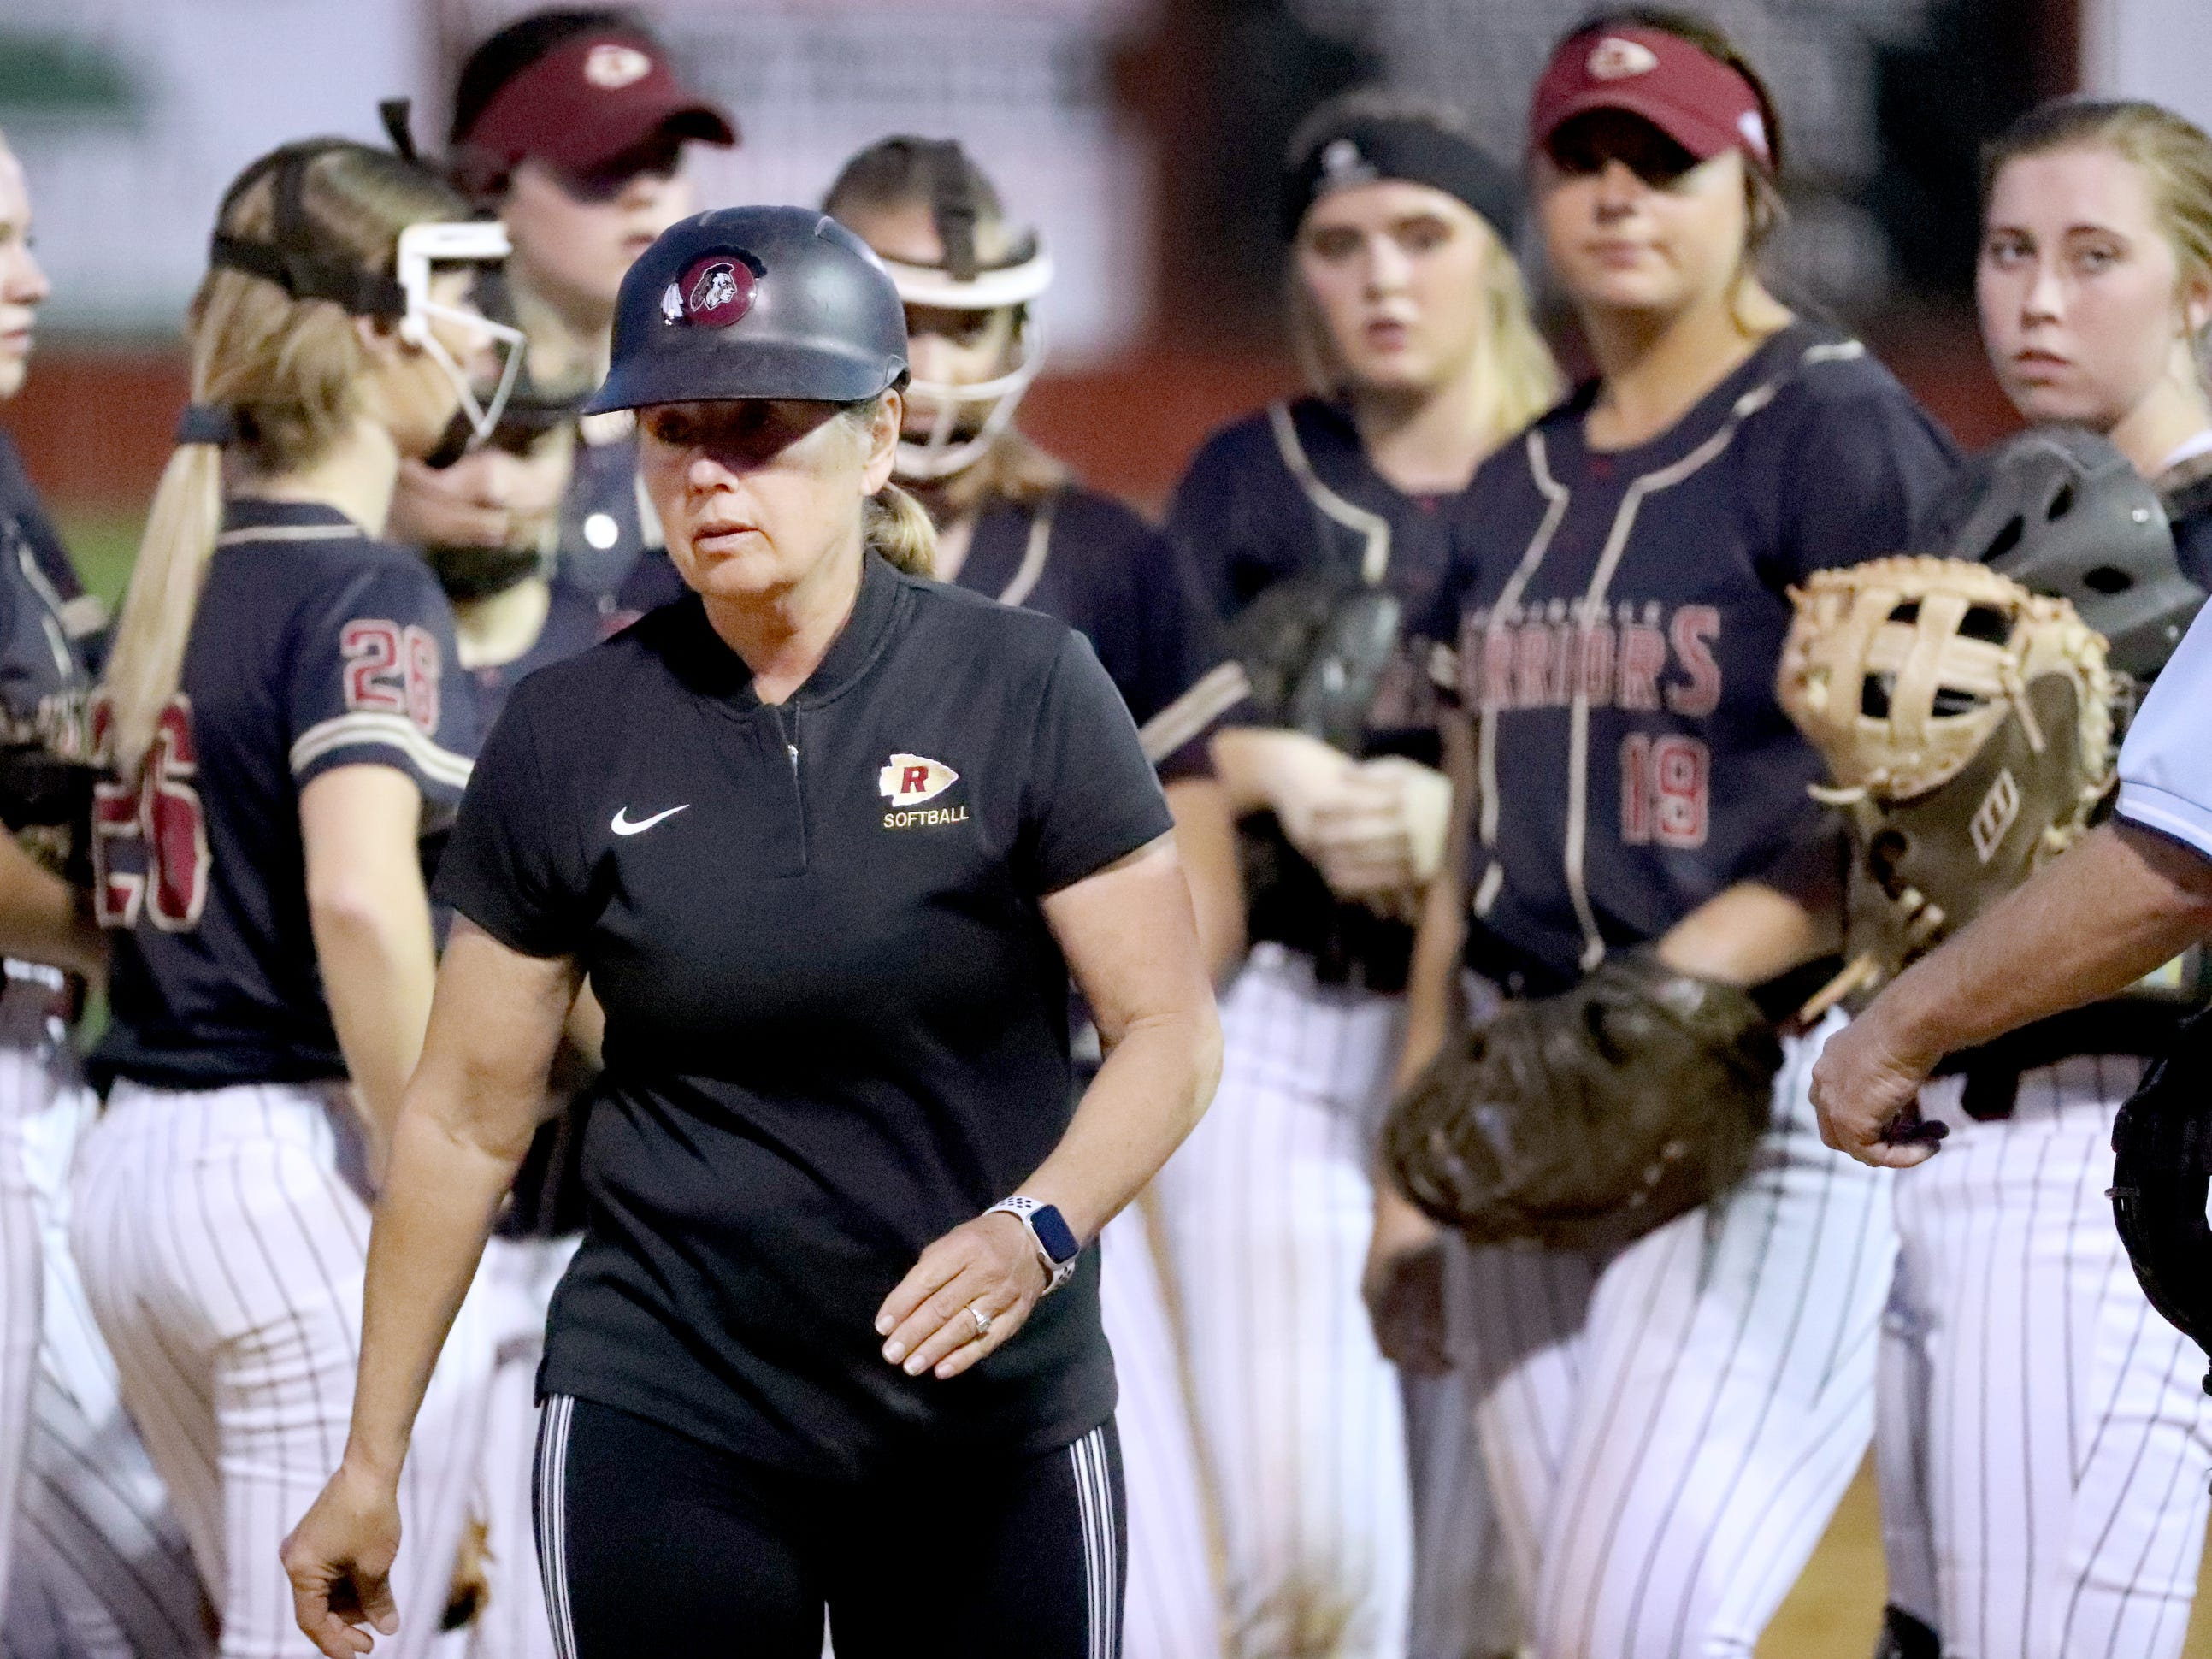 Riverdale's head coach Christy Bingham talks with her players on the field as the bases are loaded during the game against Siegel on Thursday April 11, 2019, at Riverdale.